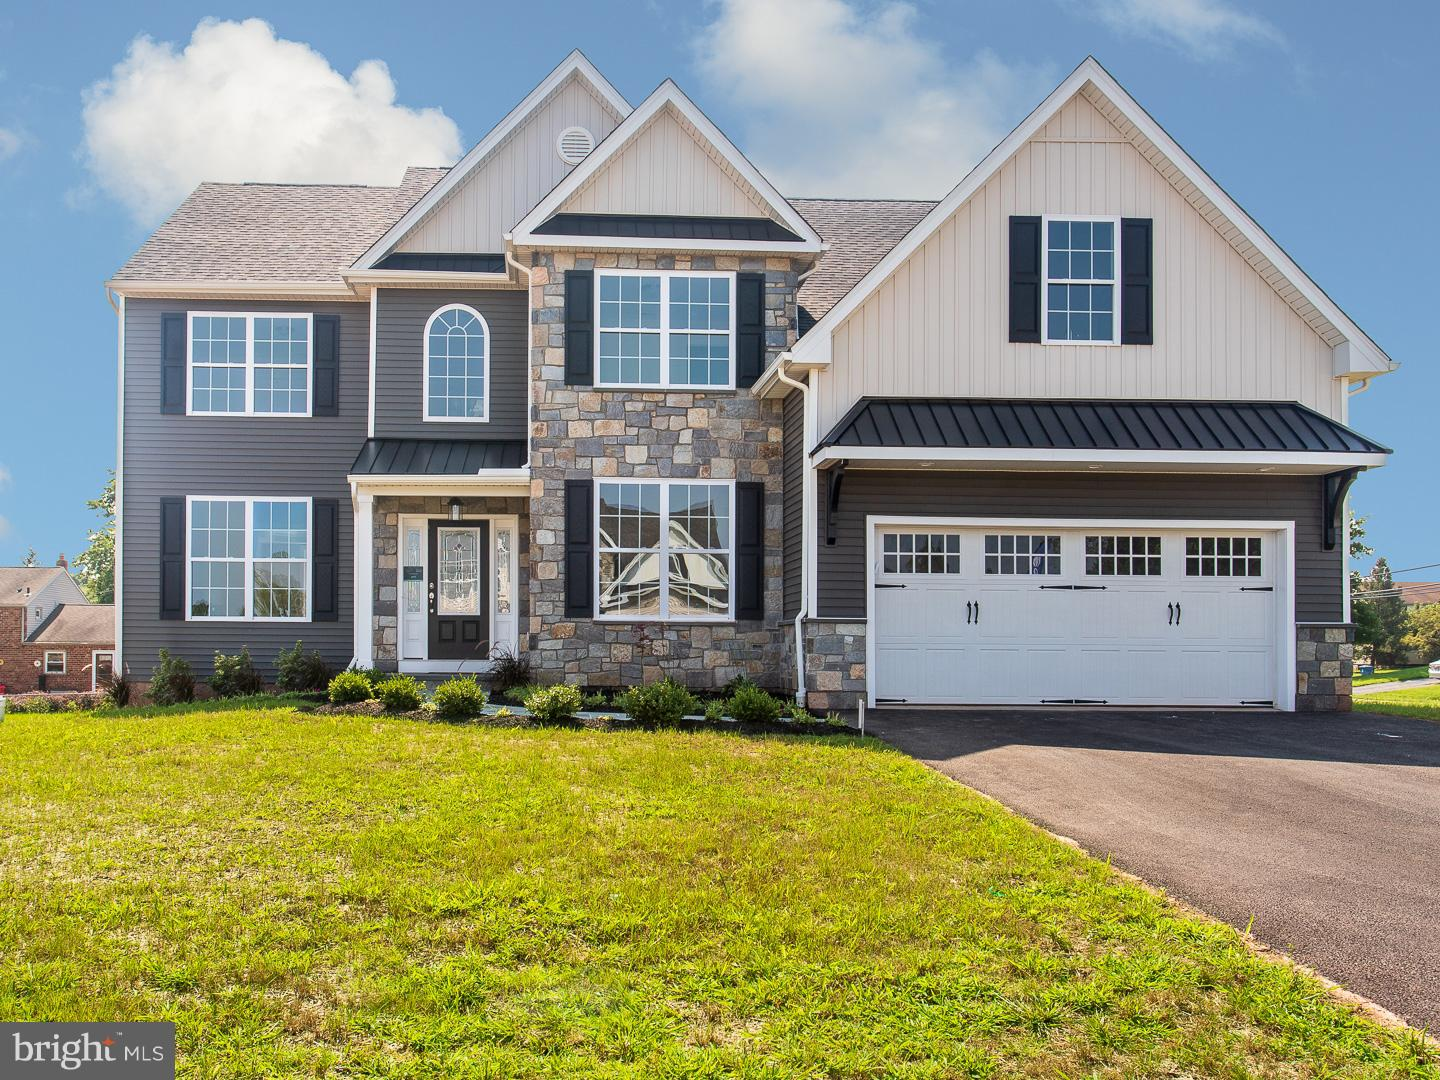 302 CALEY COURT, KING OF PRUSSIA, PA 19406